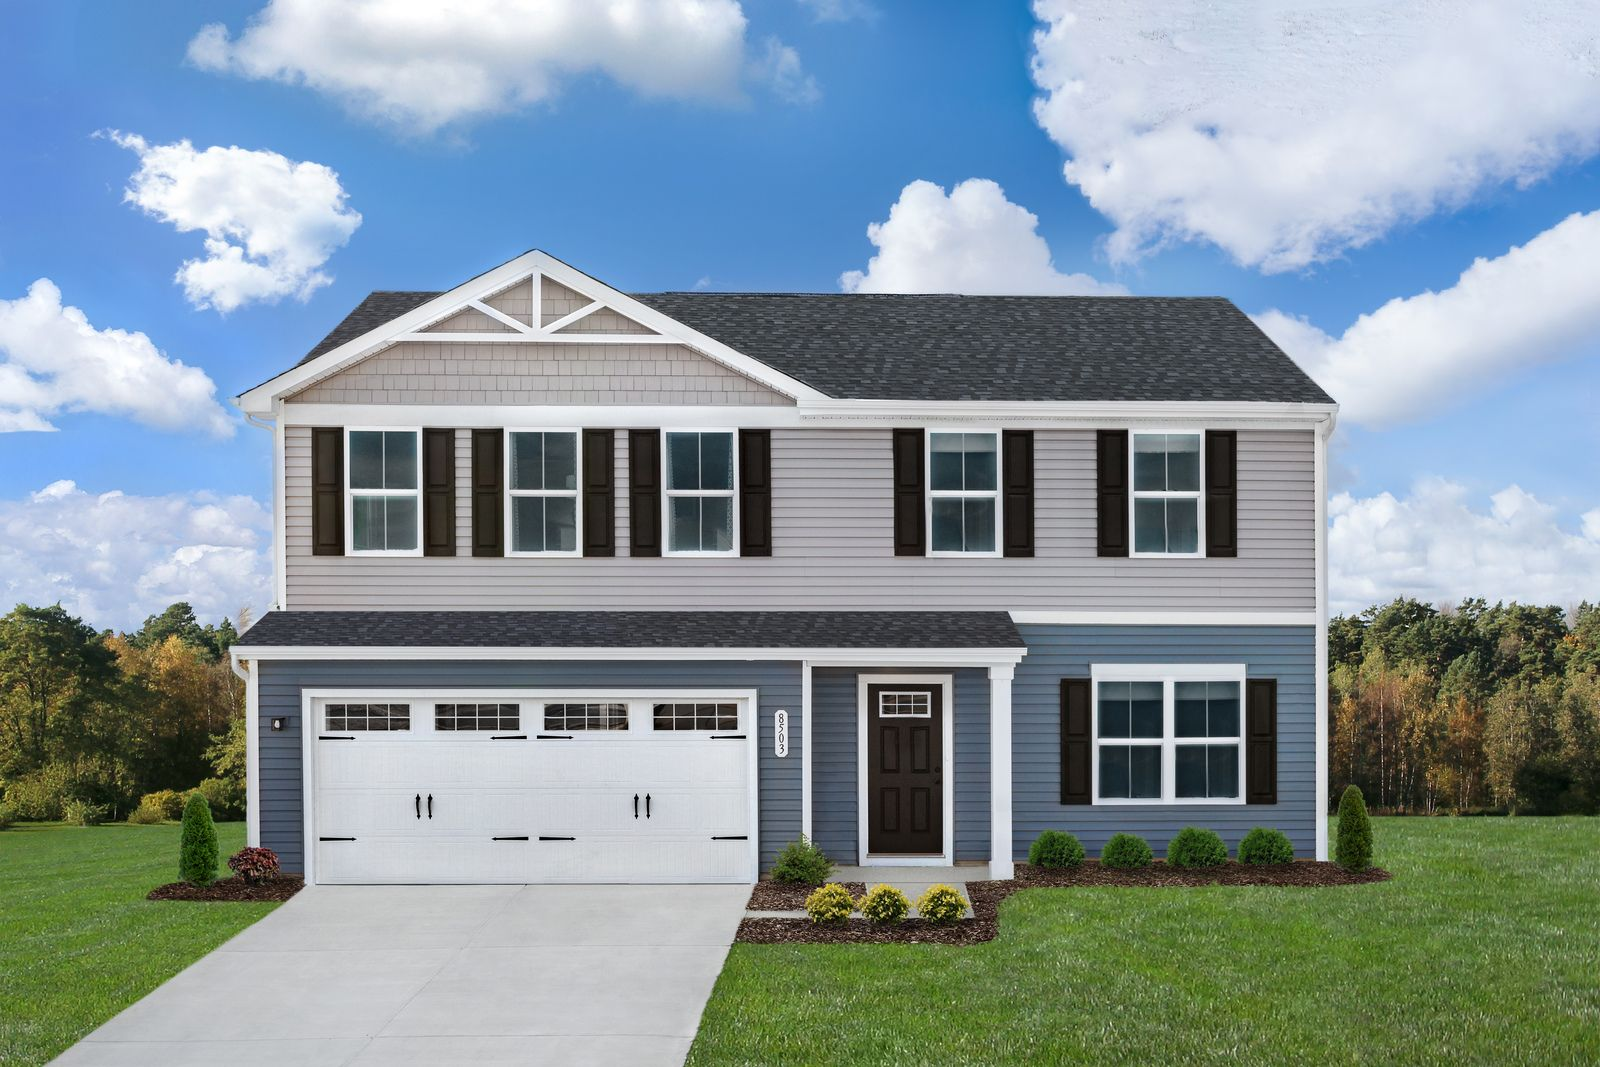 Meade's Crossing Coming This Fall:Own a new home with little to no money down and very low out-of-pocket costs!Join our VIP list todayand be the first to learn more about our newest phase at Meade's Crossing, coming later this Fall.